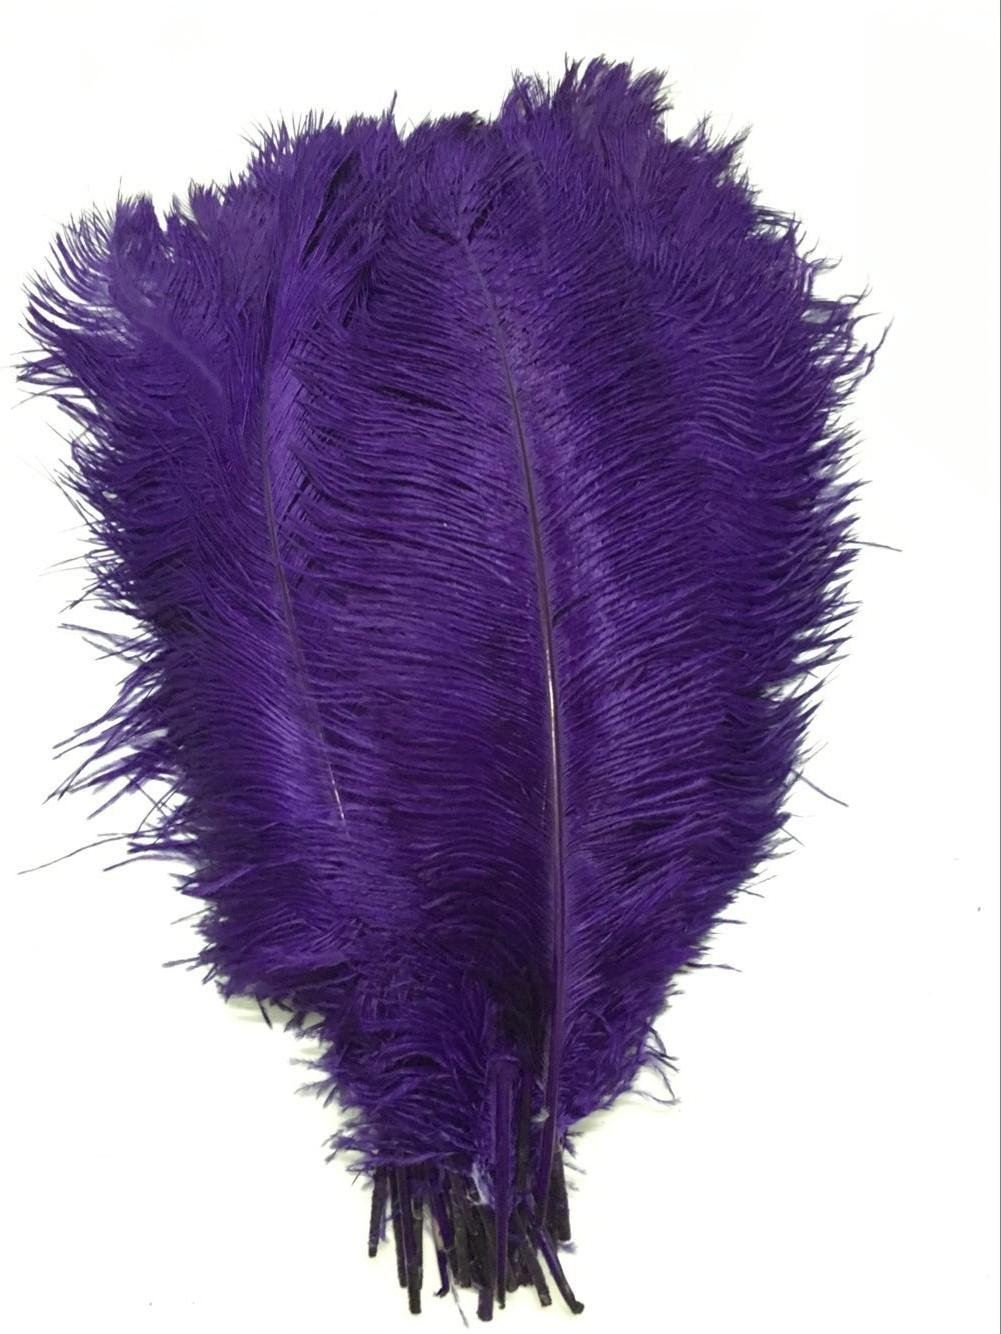 KOLIGHT30pcs Ostrich Feather Purple 12''-14'' Natural Feathers Wedding, Party,Home,Hairs Decoration